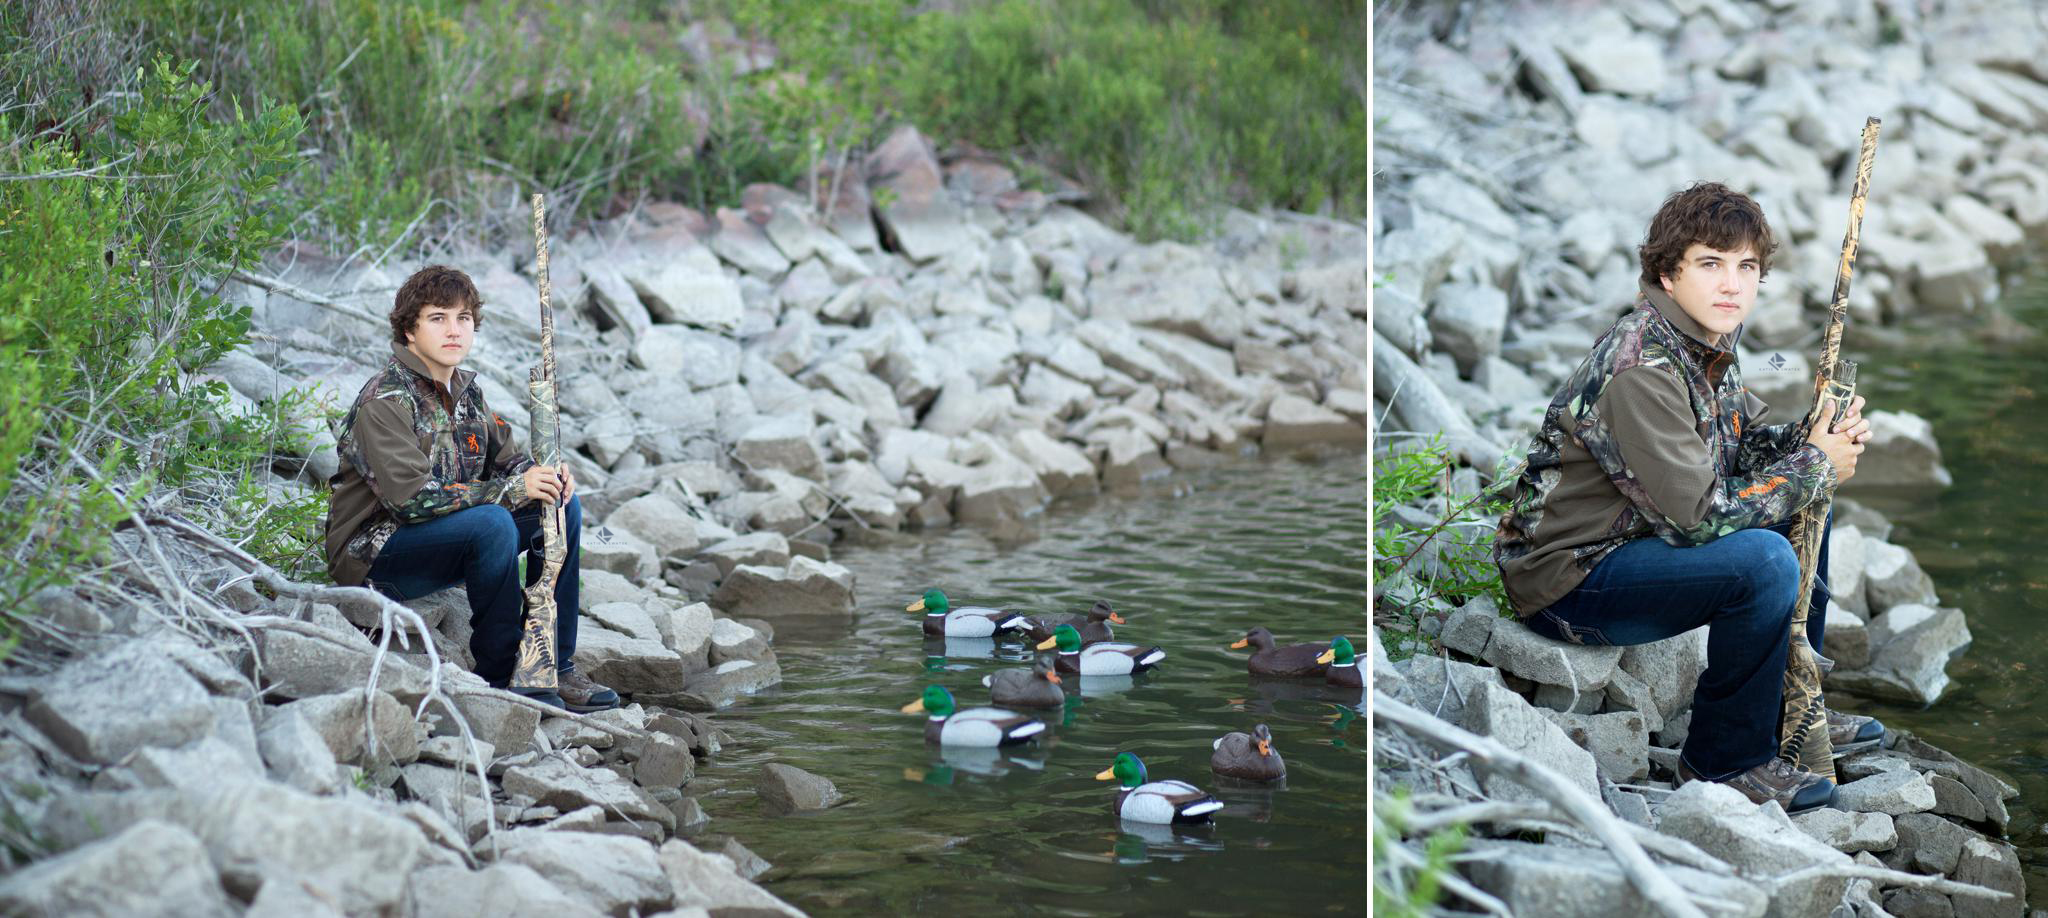 brunette senior guy in camouflage sitting on rocks next to the river with a gun and duck decoys